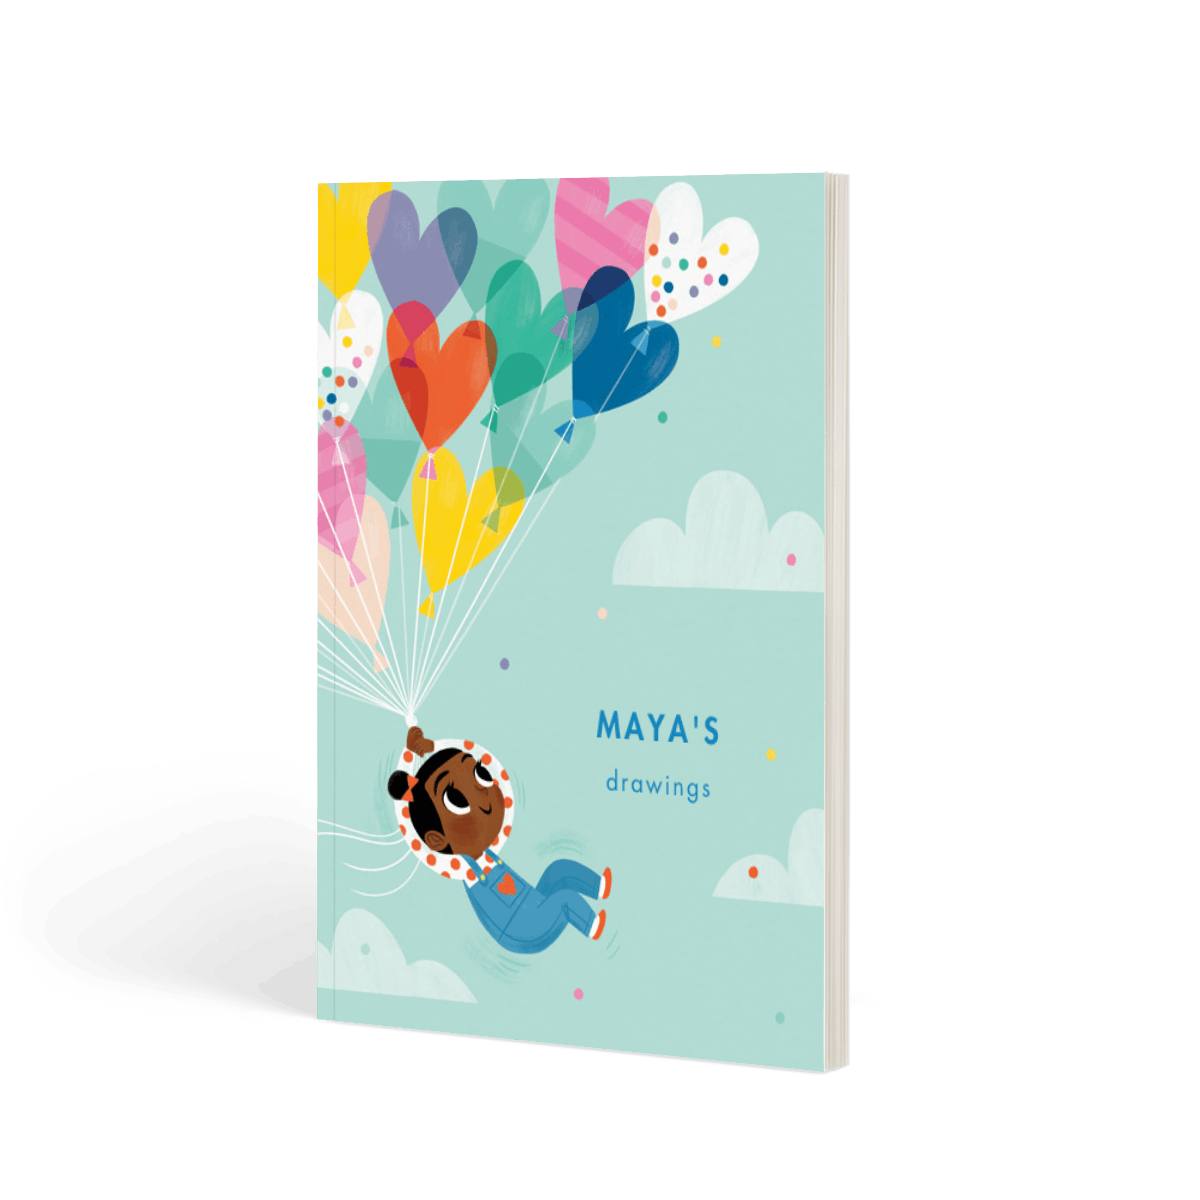 Https%3a%2f%2fwww.papier.com%2fproduct image%2f31693%2f3%2fballoon girl i 7962 front 1511526730.png?ixlib=rb 1.1